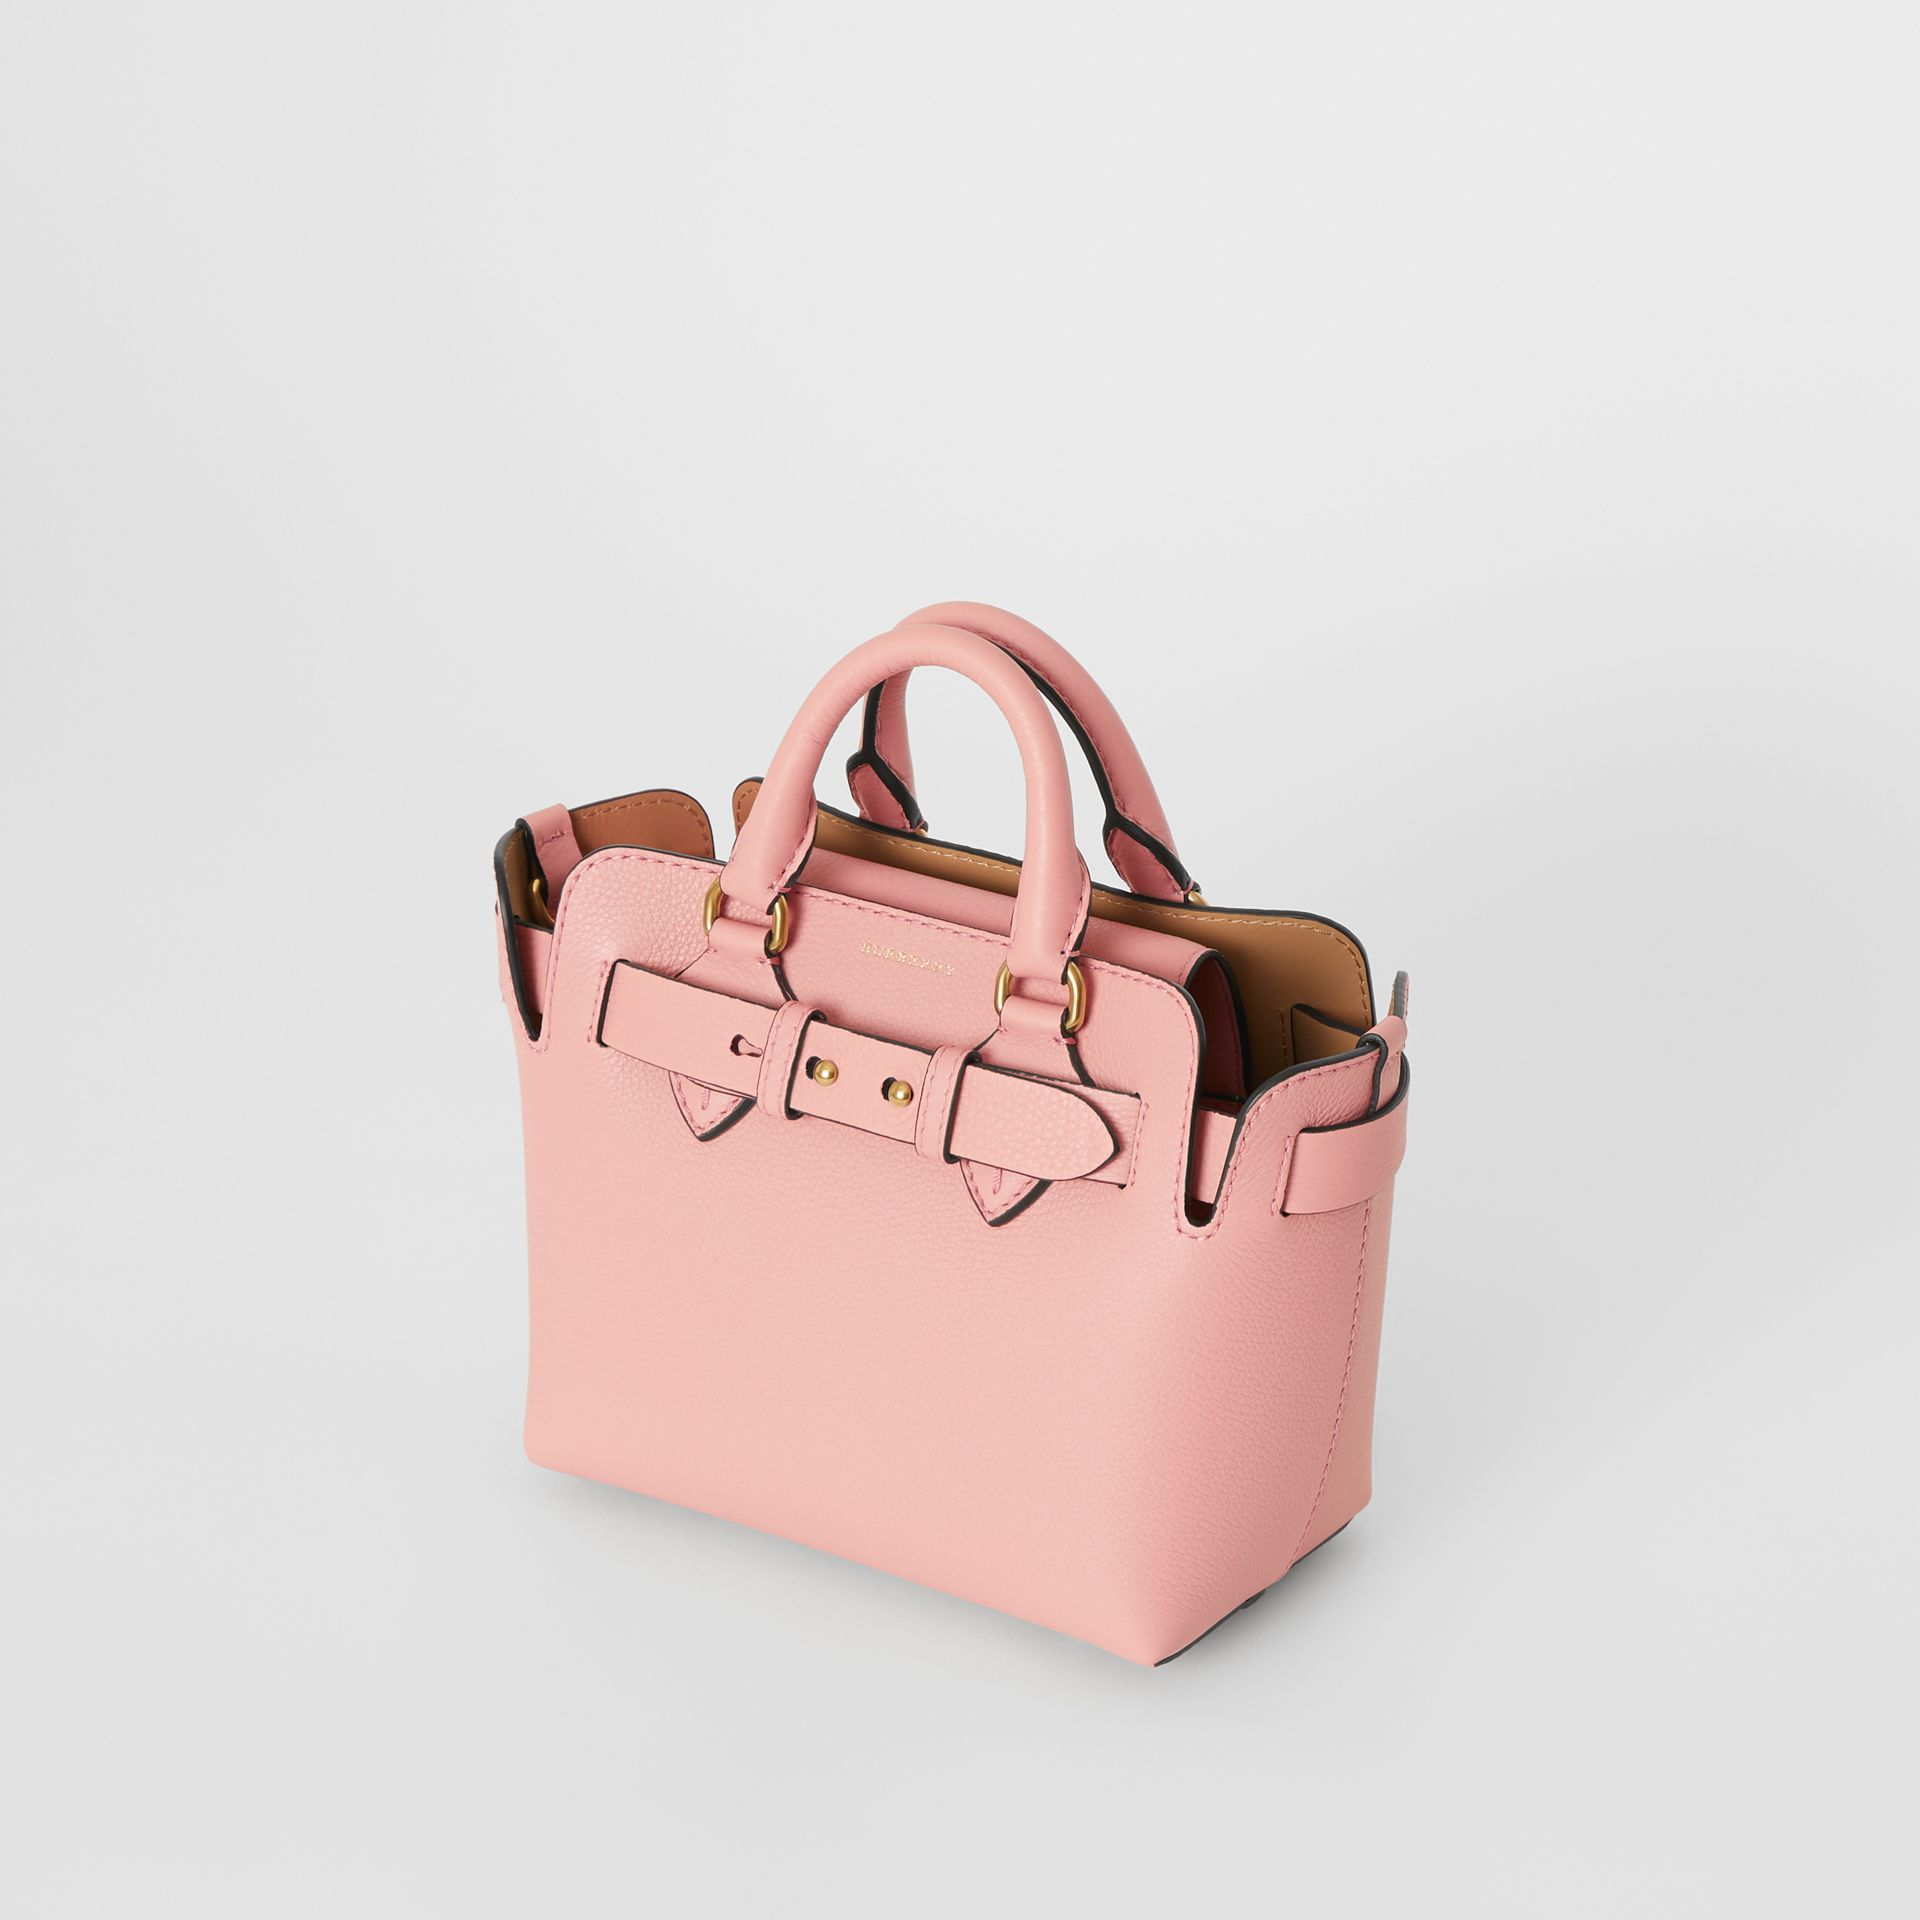 Borsa The Belt mini in pelle (Rosa Cenere) - Donna | Burberry - immagine della galleria 4